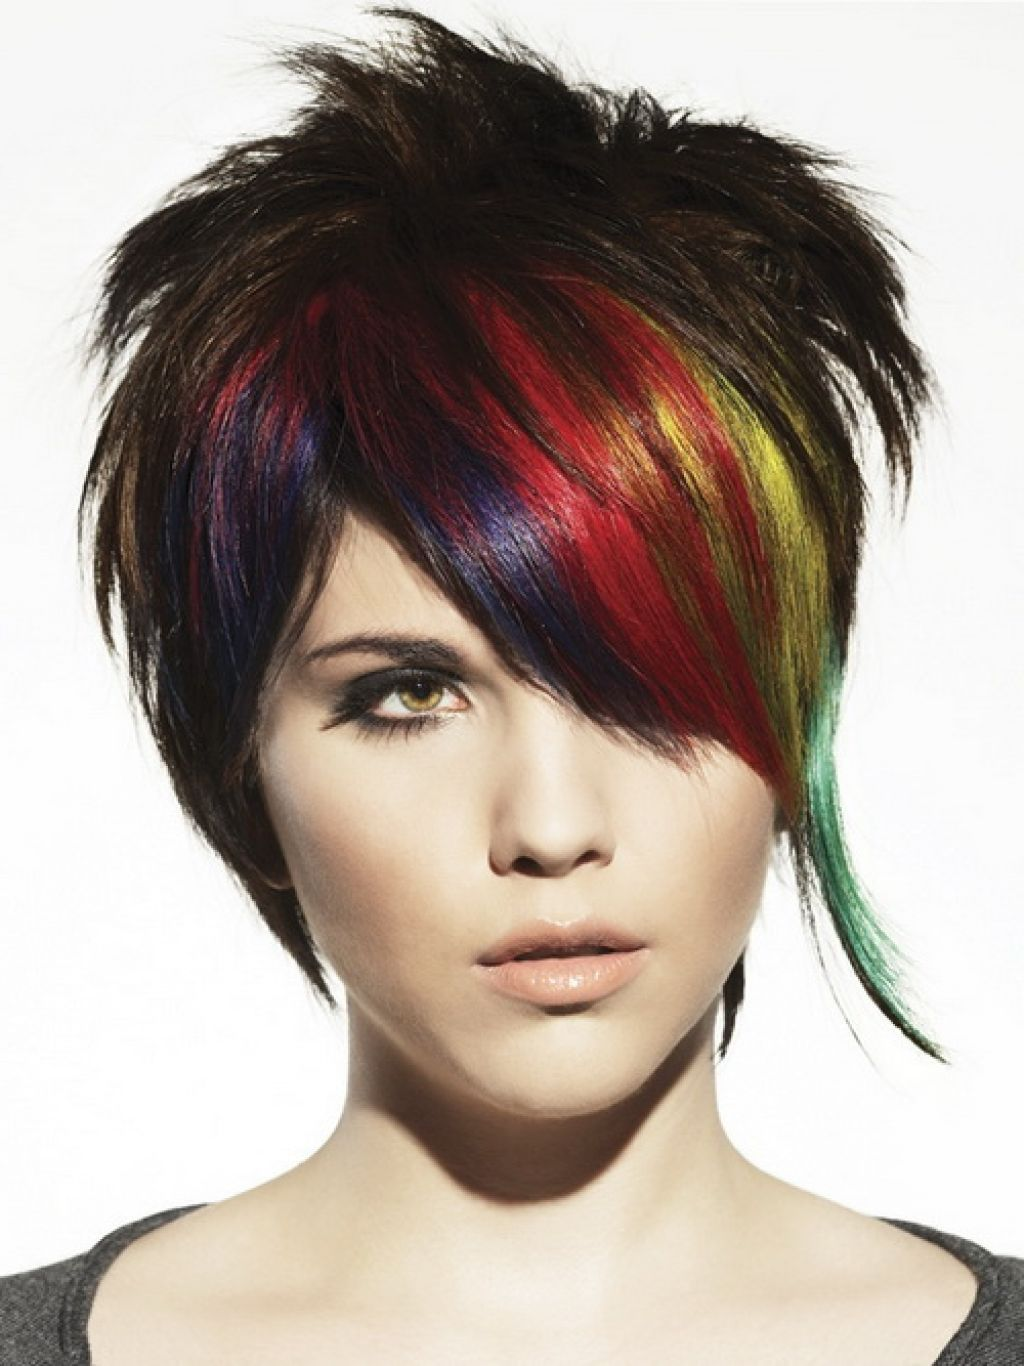 color punk rock hairstyles for women | bushwhacked | short